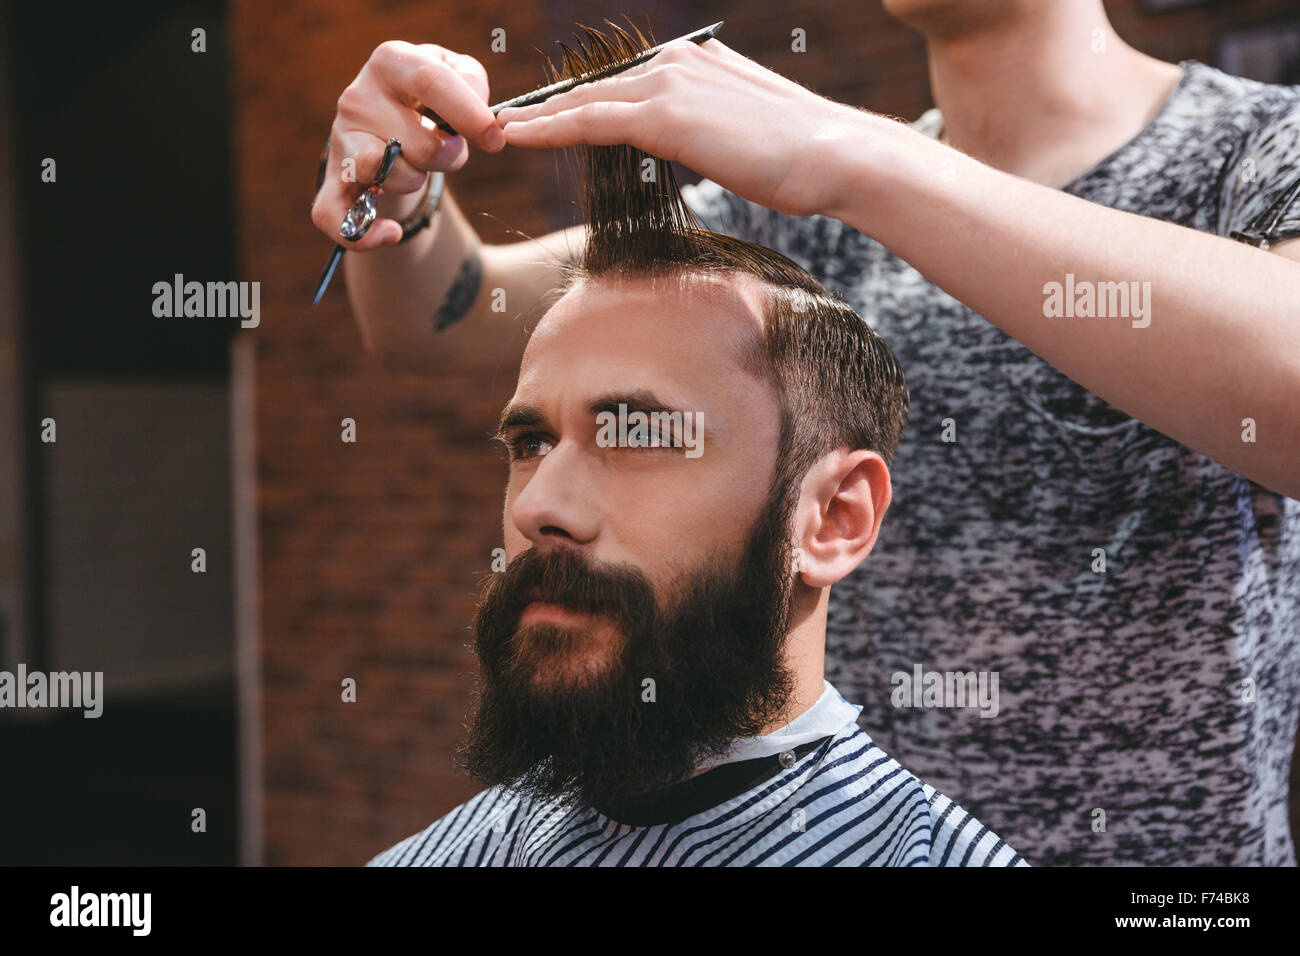 Portrait of young handsome man with beard having a haircut with comb and scissors in hair salon - Stock Image